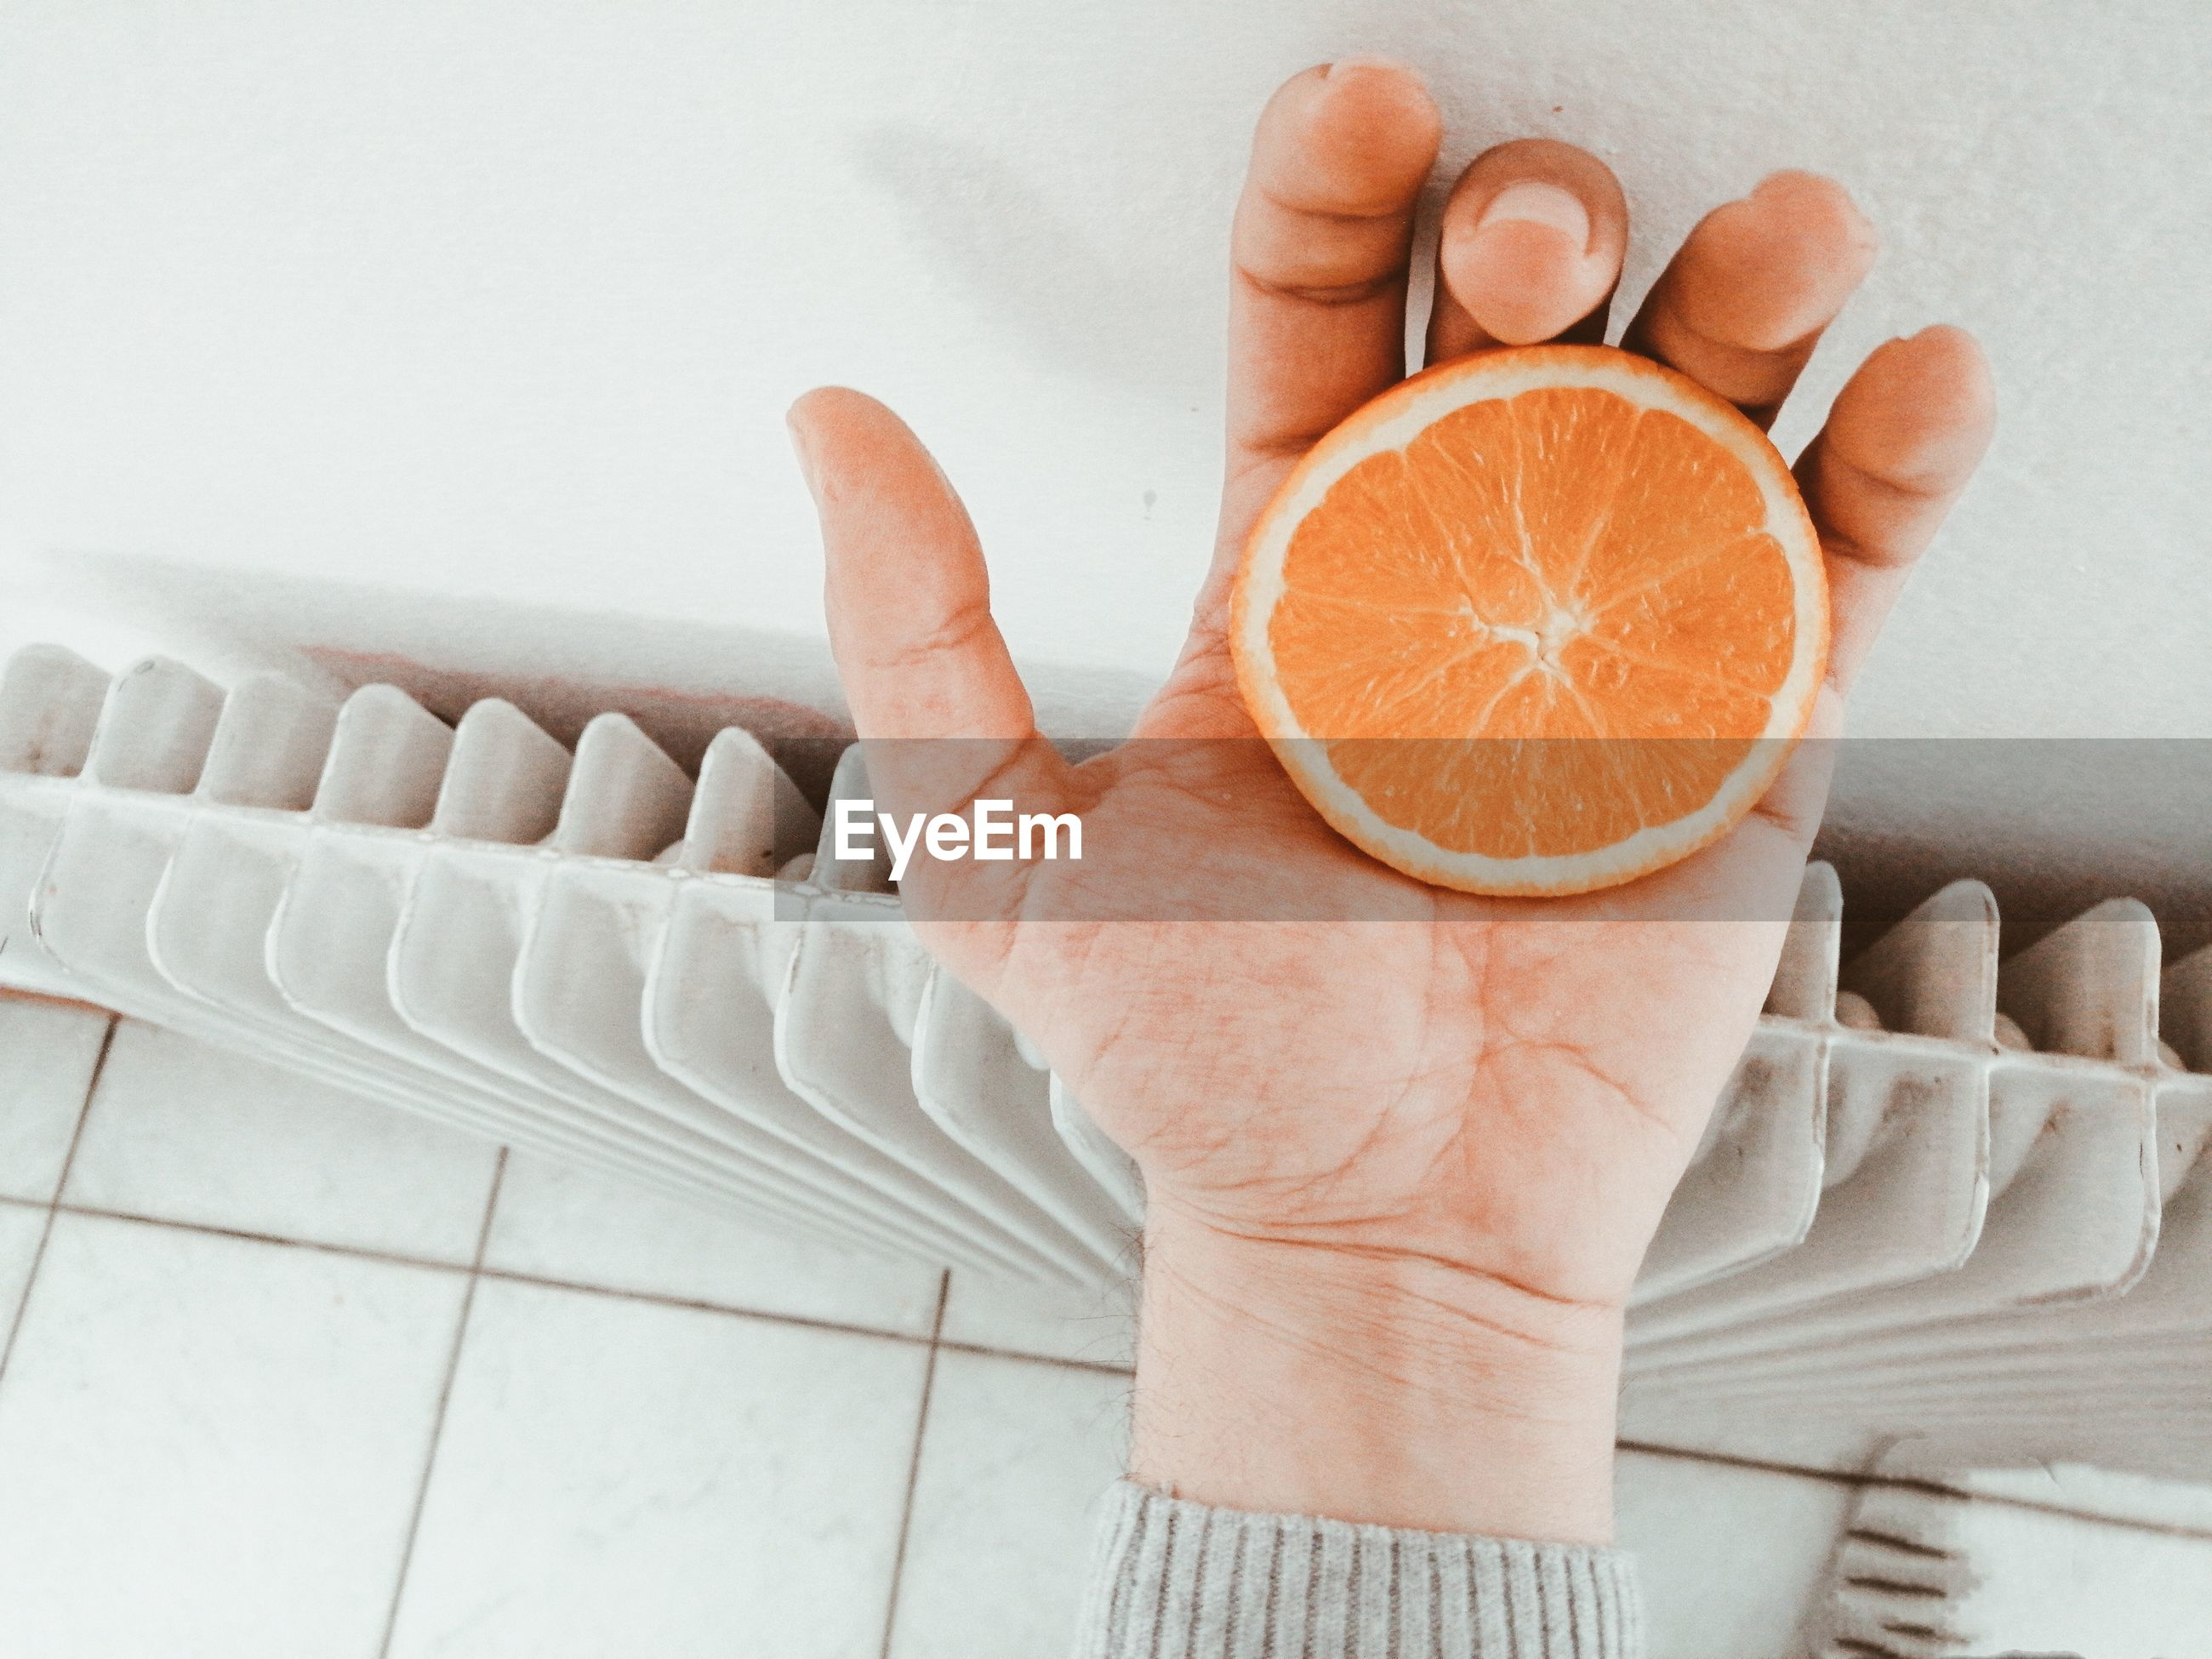 MIDSECTION OF MAN HOLDING ORANGE